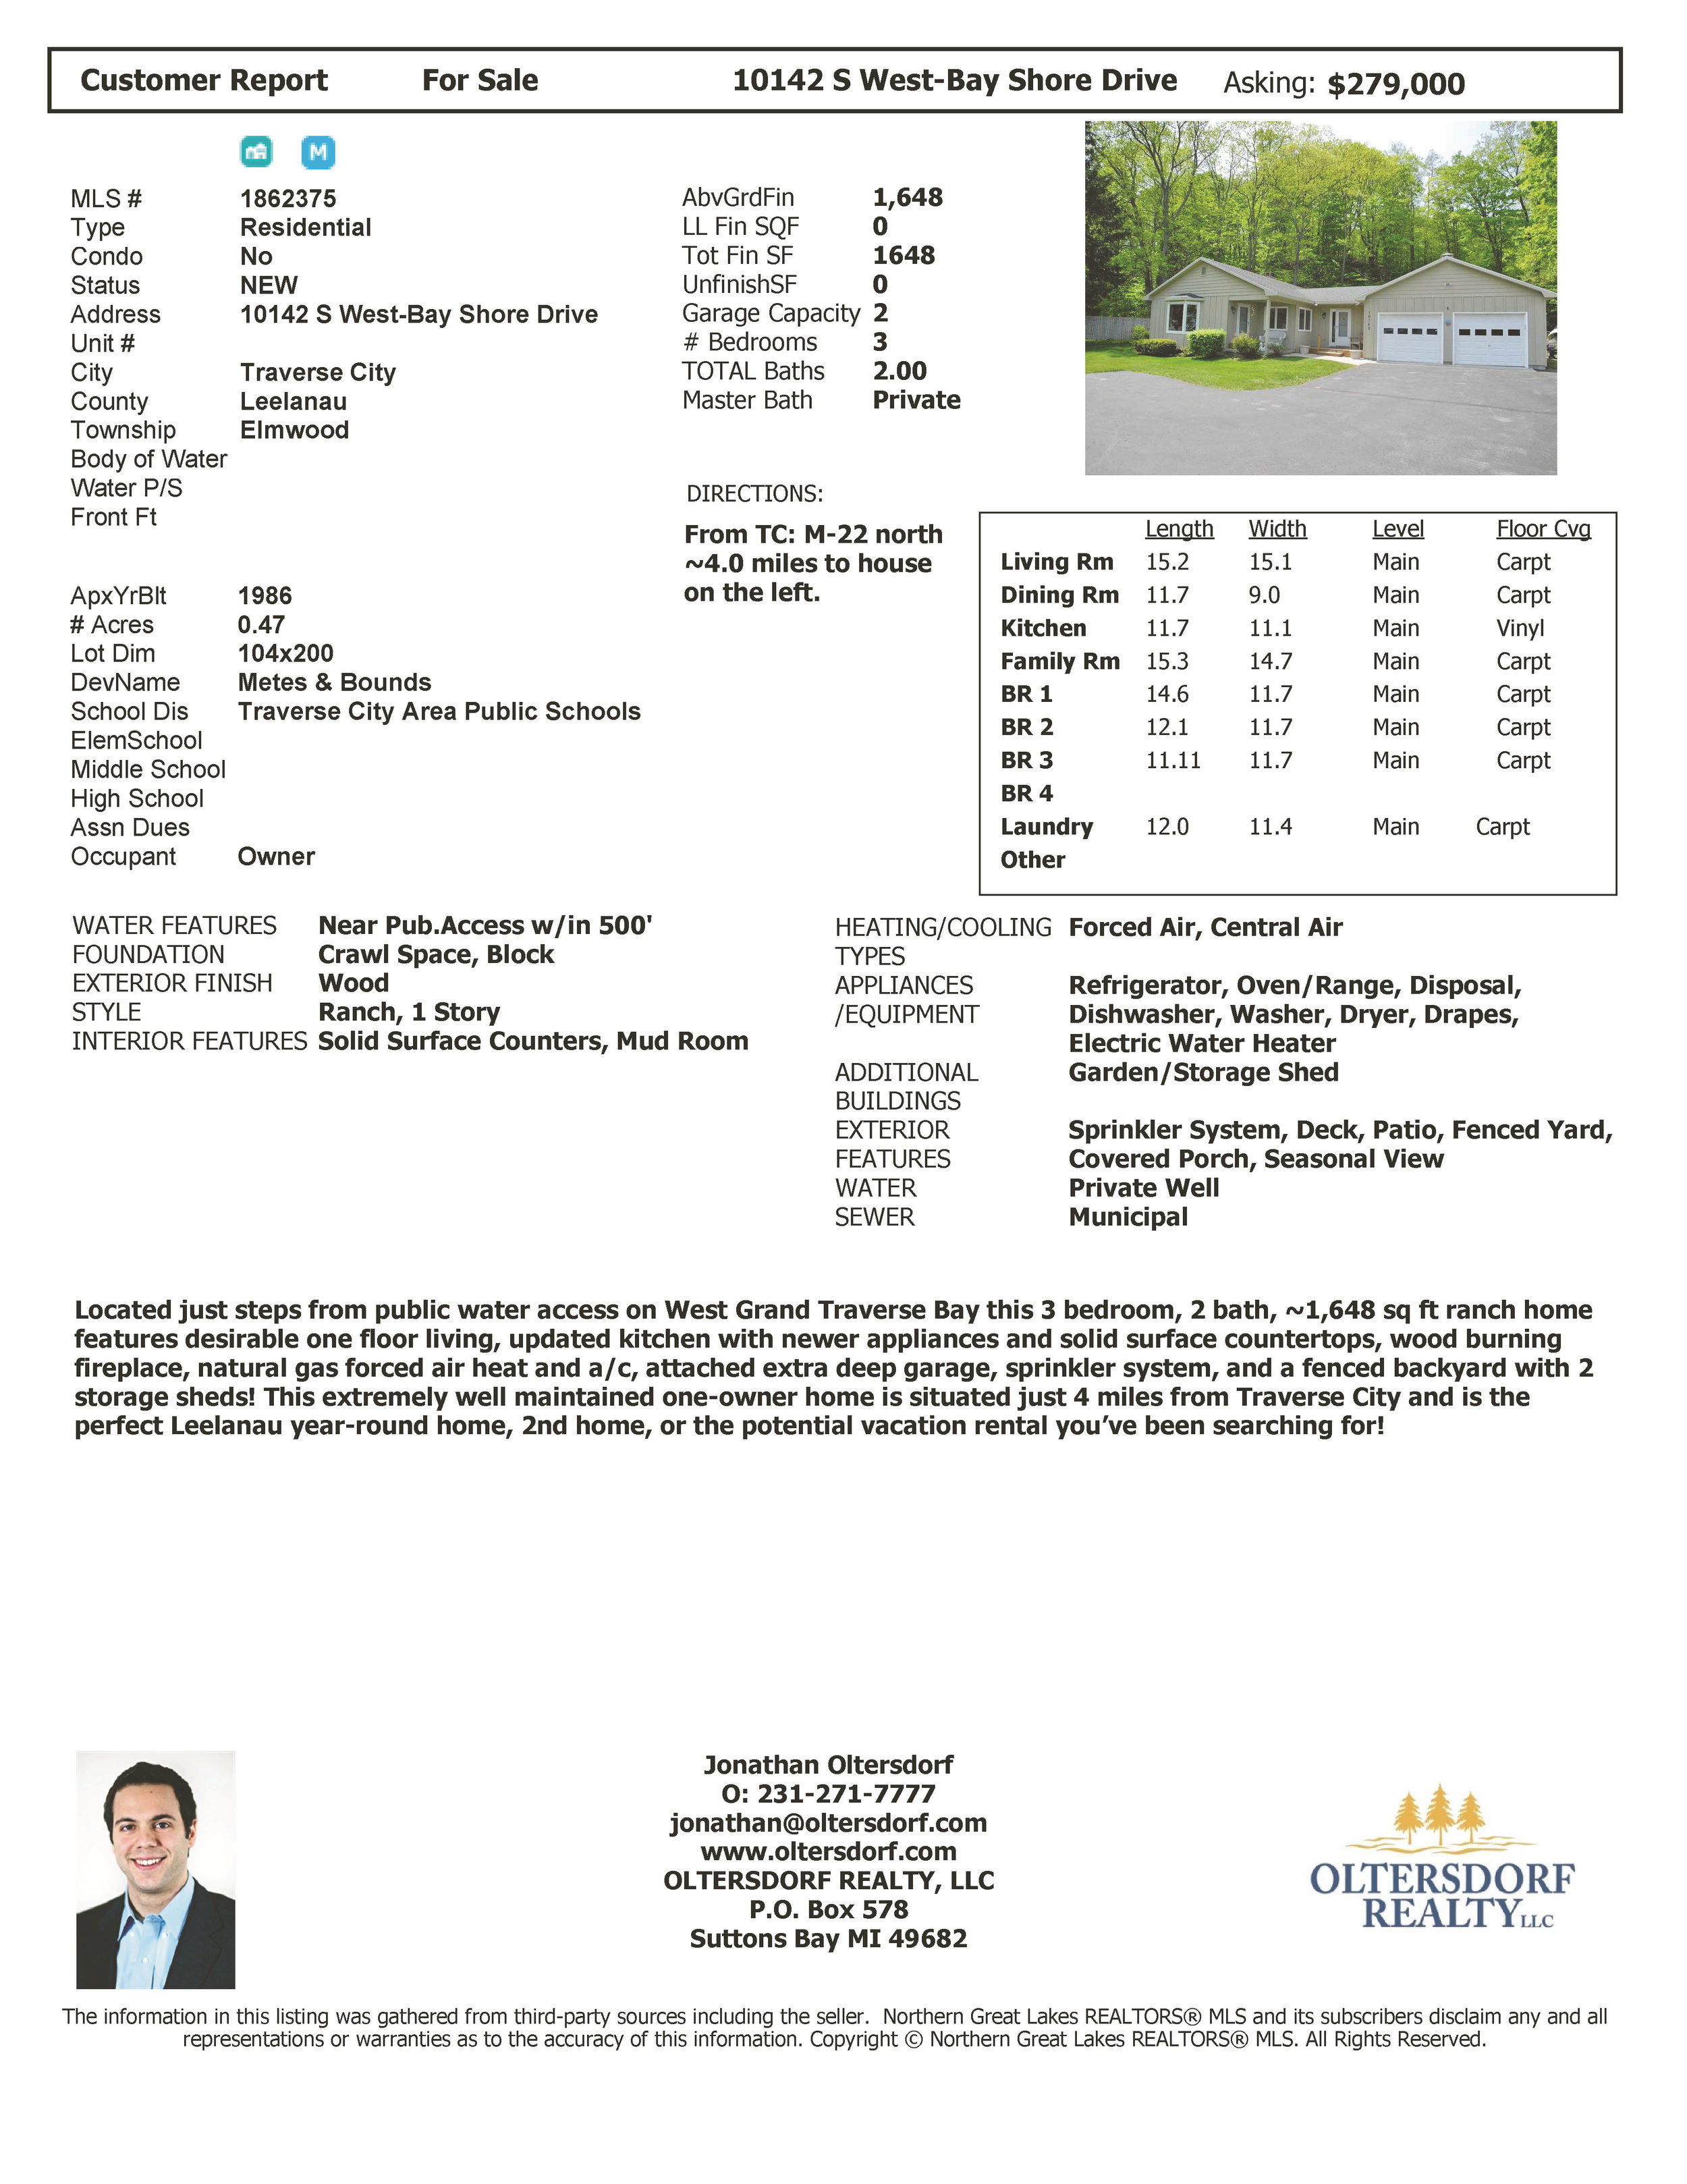 10142 S West Bay Shore Drive, Traverse City, MI - For sale by Oltersdorf Realty LLC - Marketing Packet (8).jpg